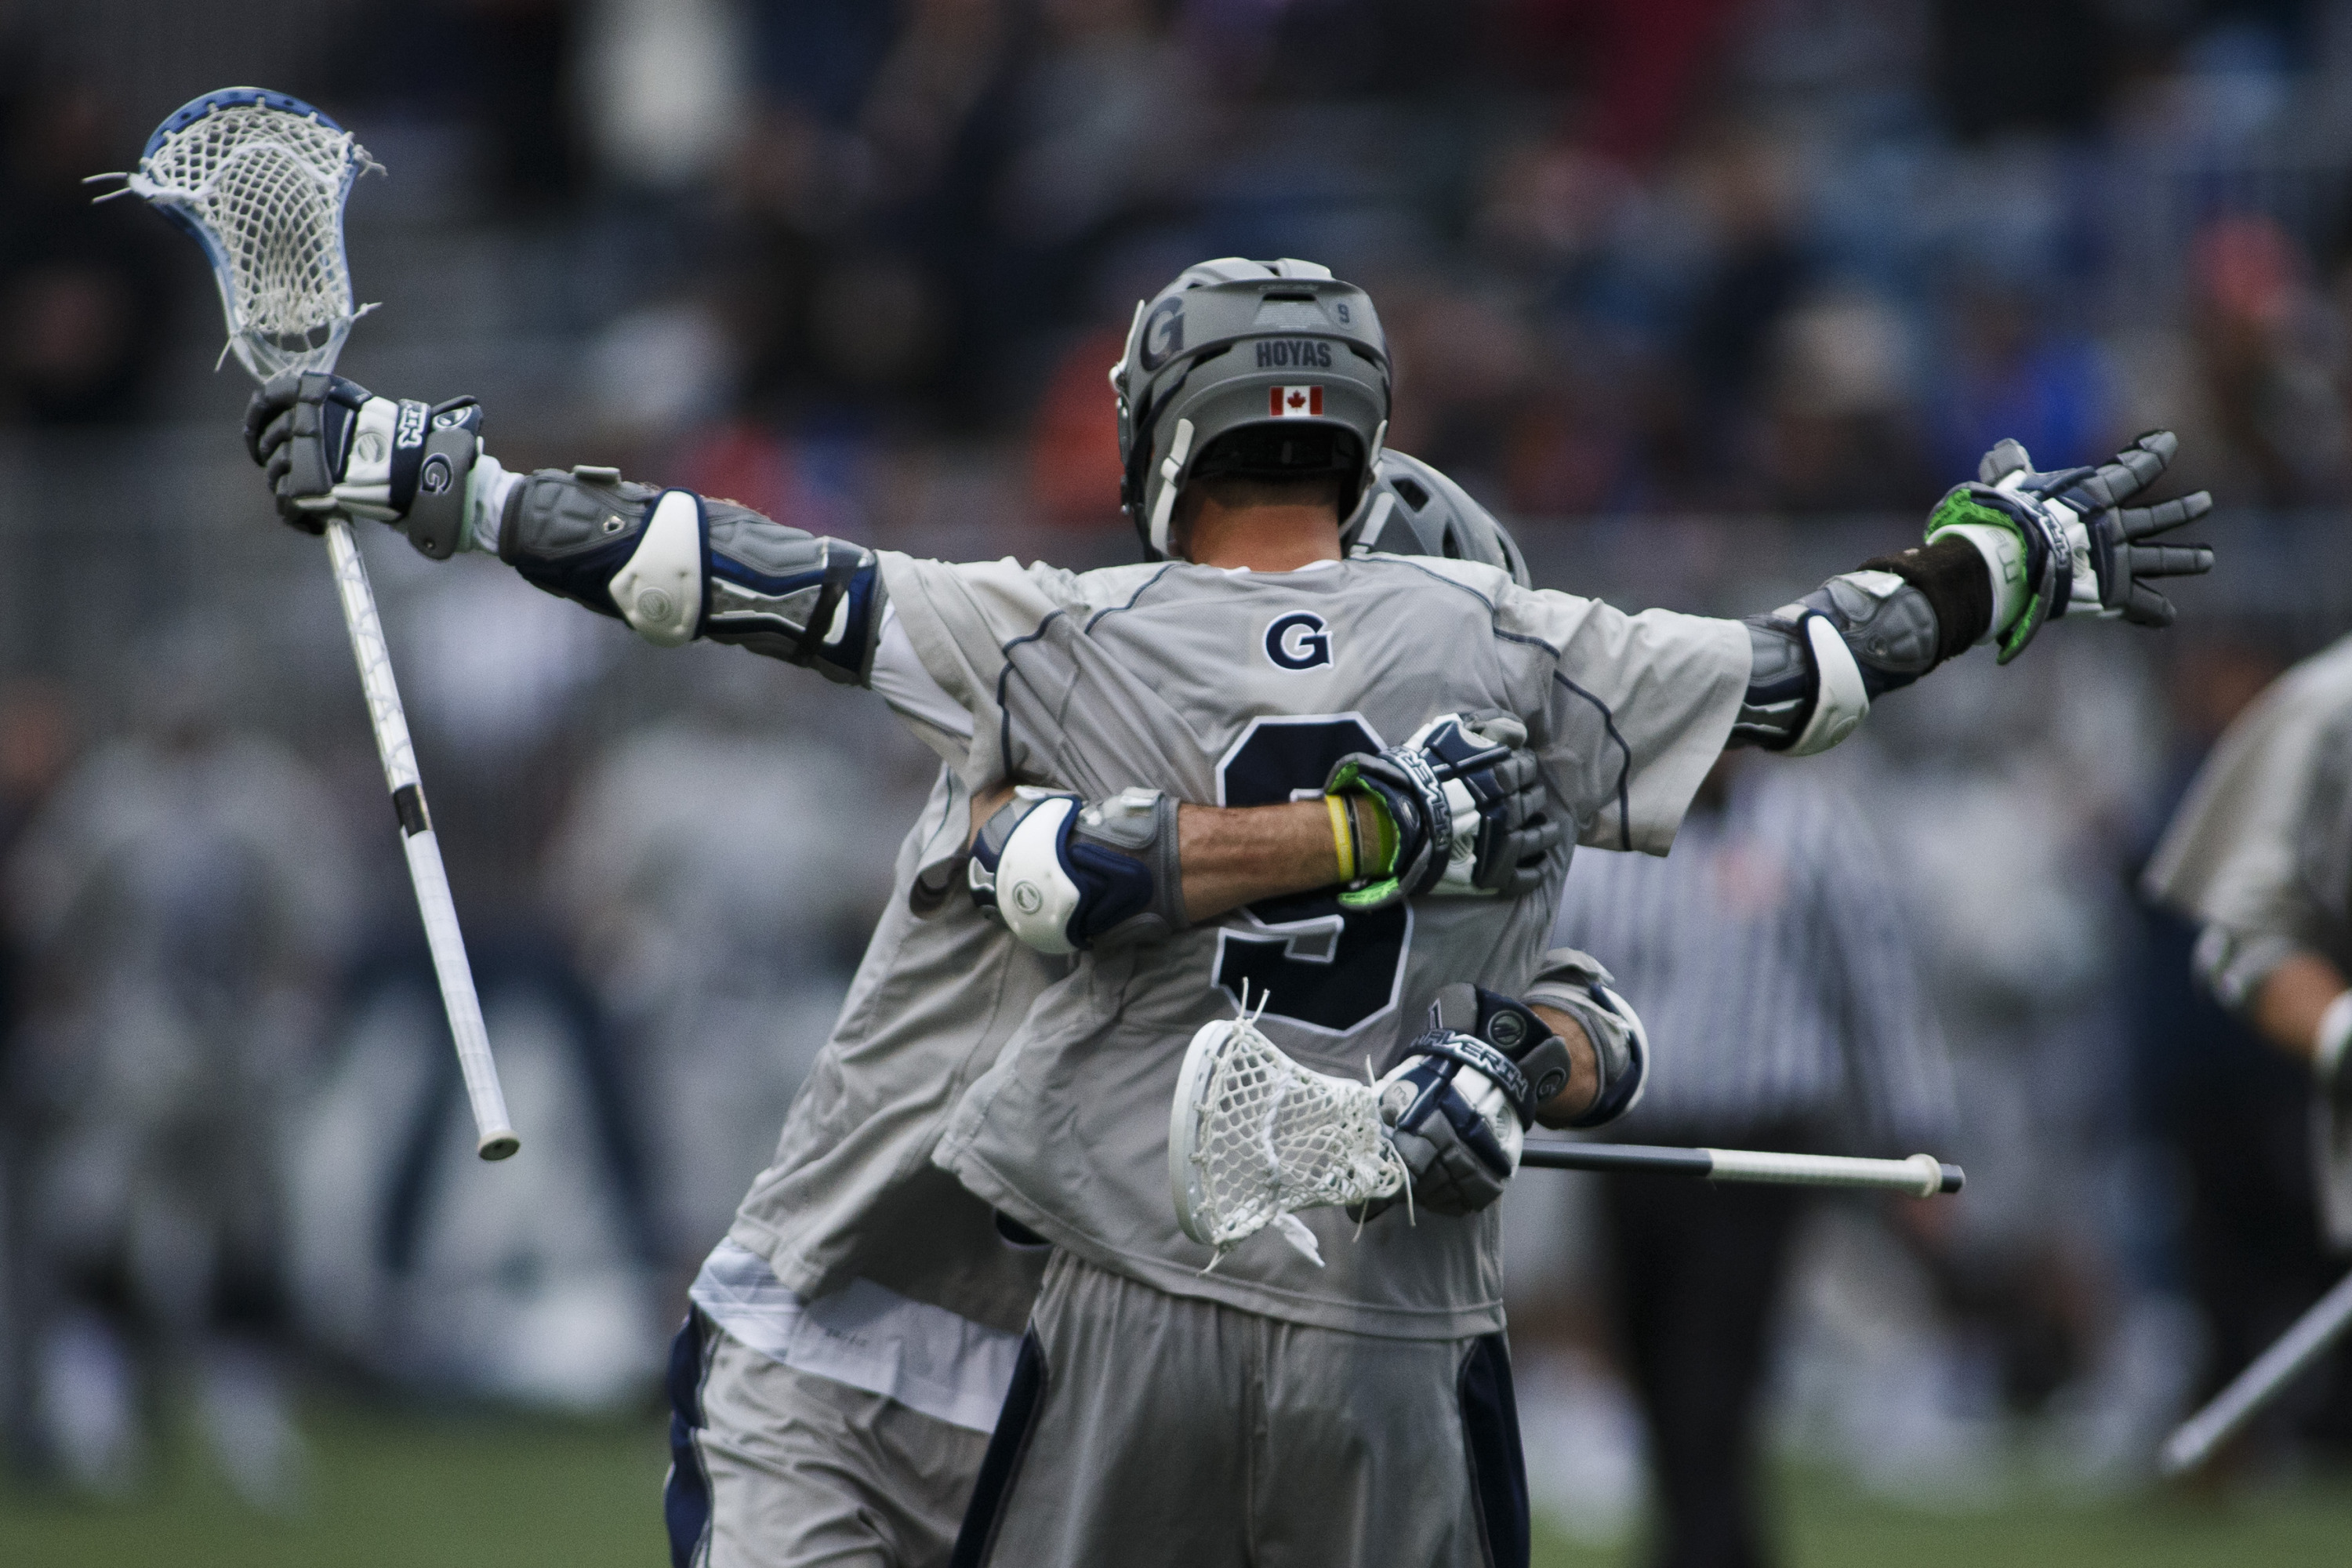 Reilly O'Connor had four assists in the Hoyas victory.